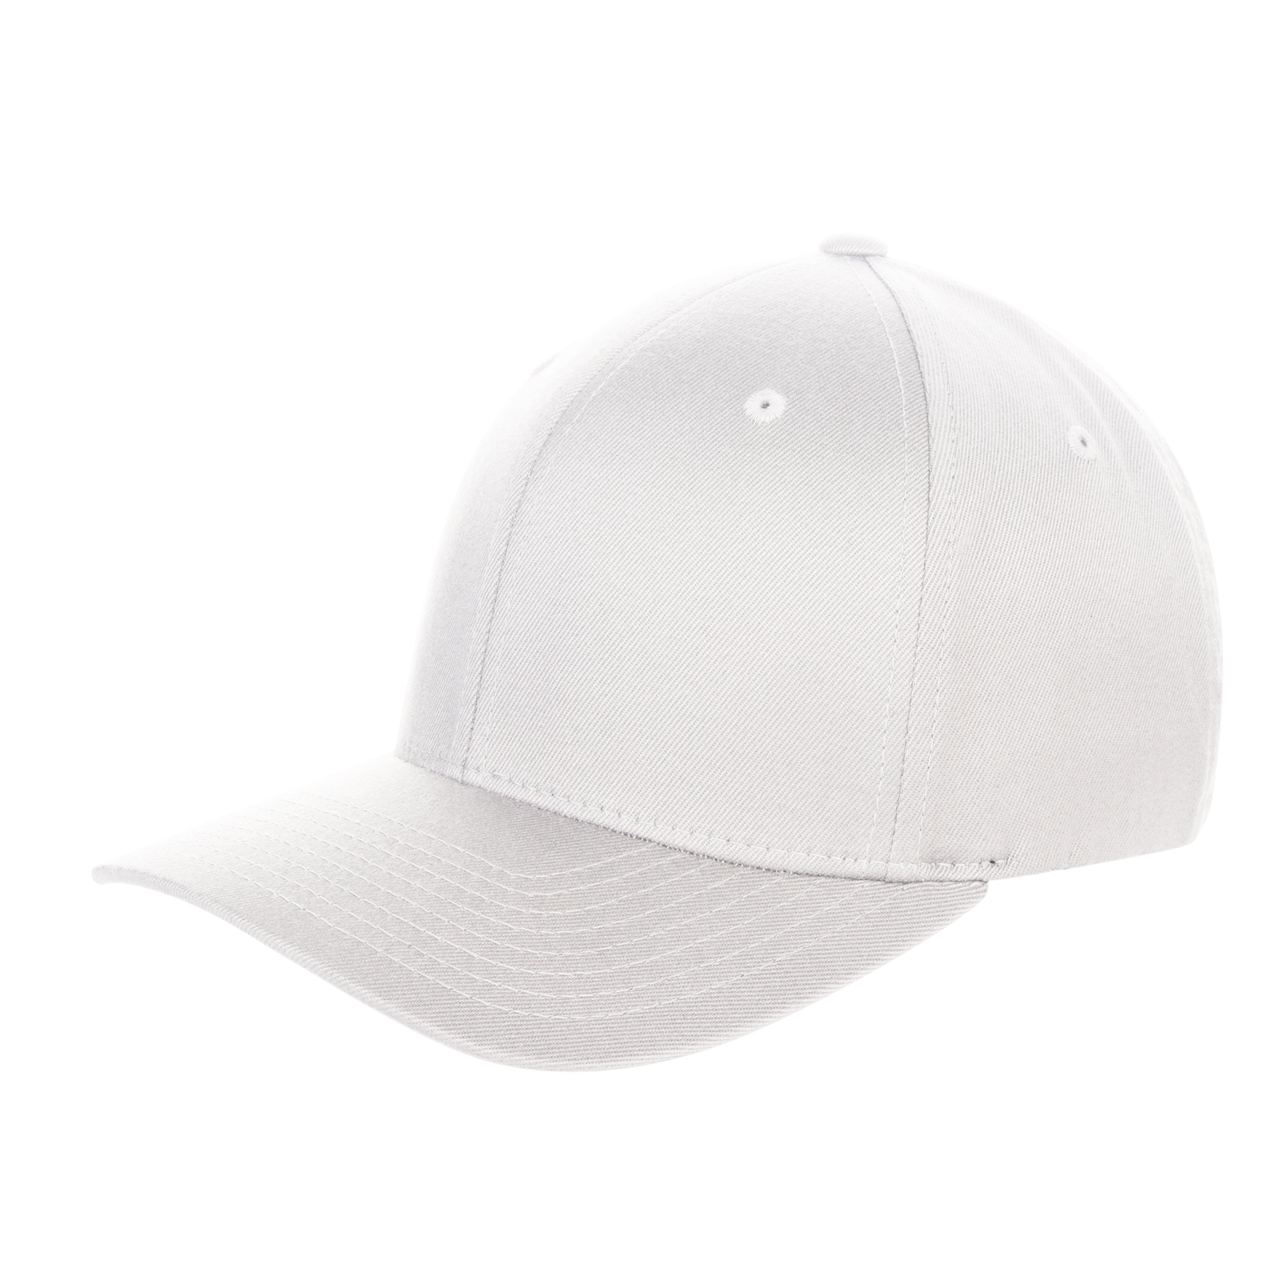 086e02aaa7be1 Gents - The Director s Baseball Cap - White